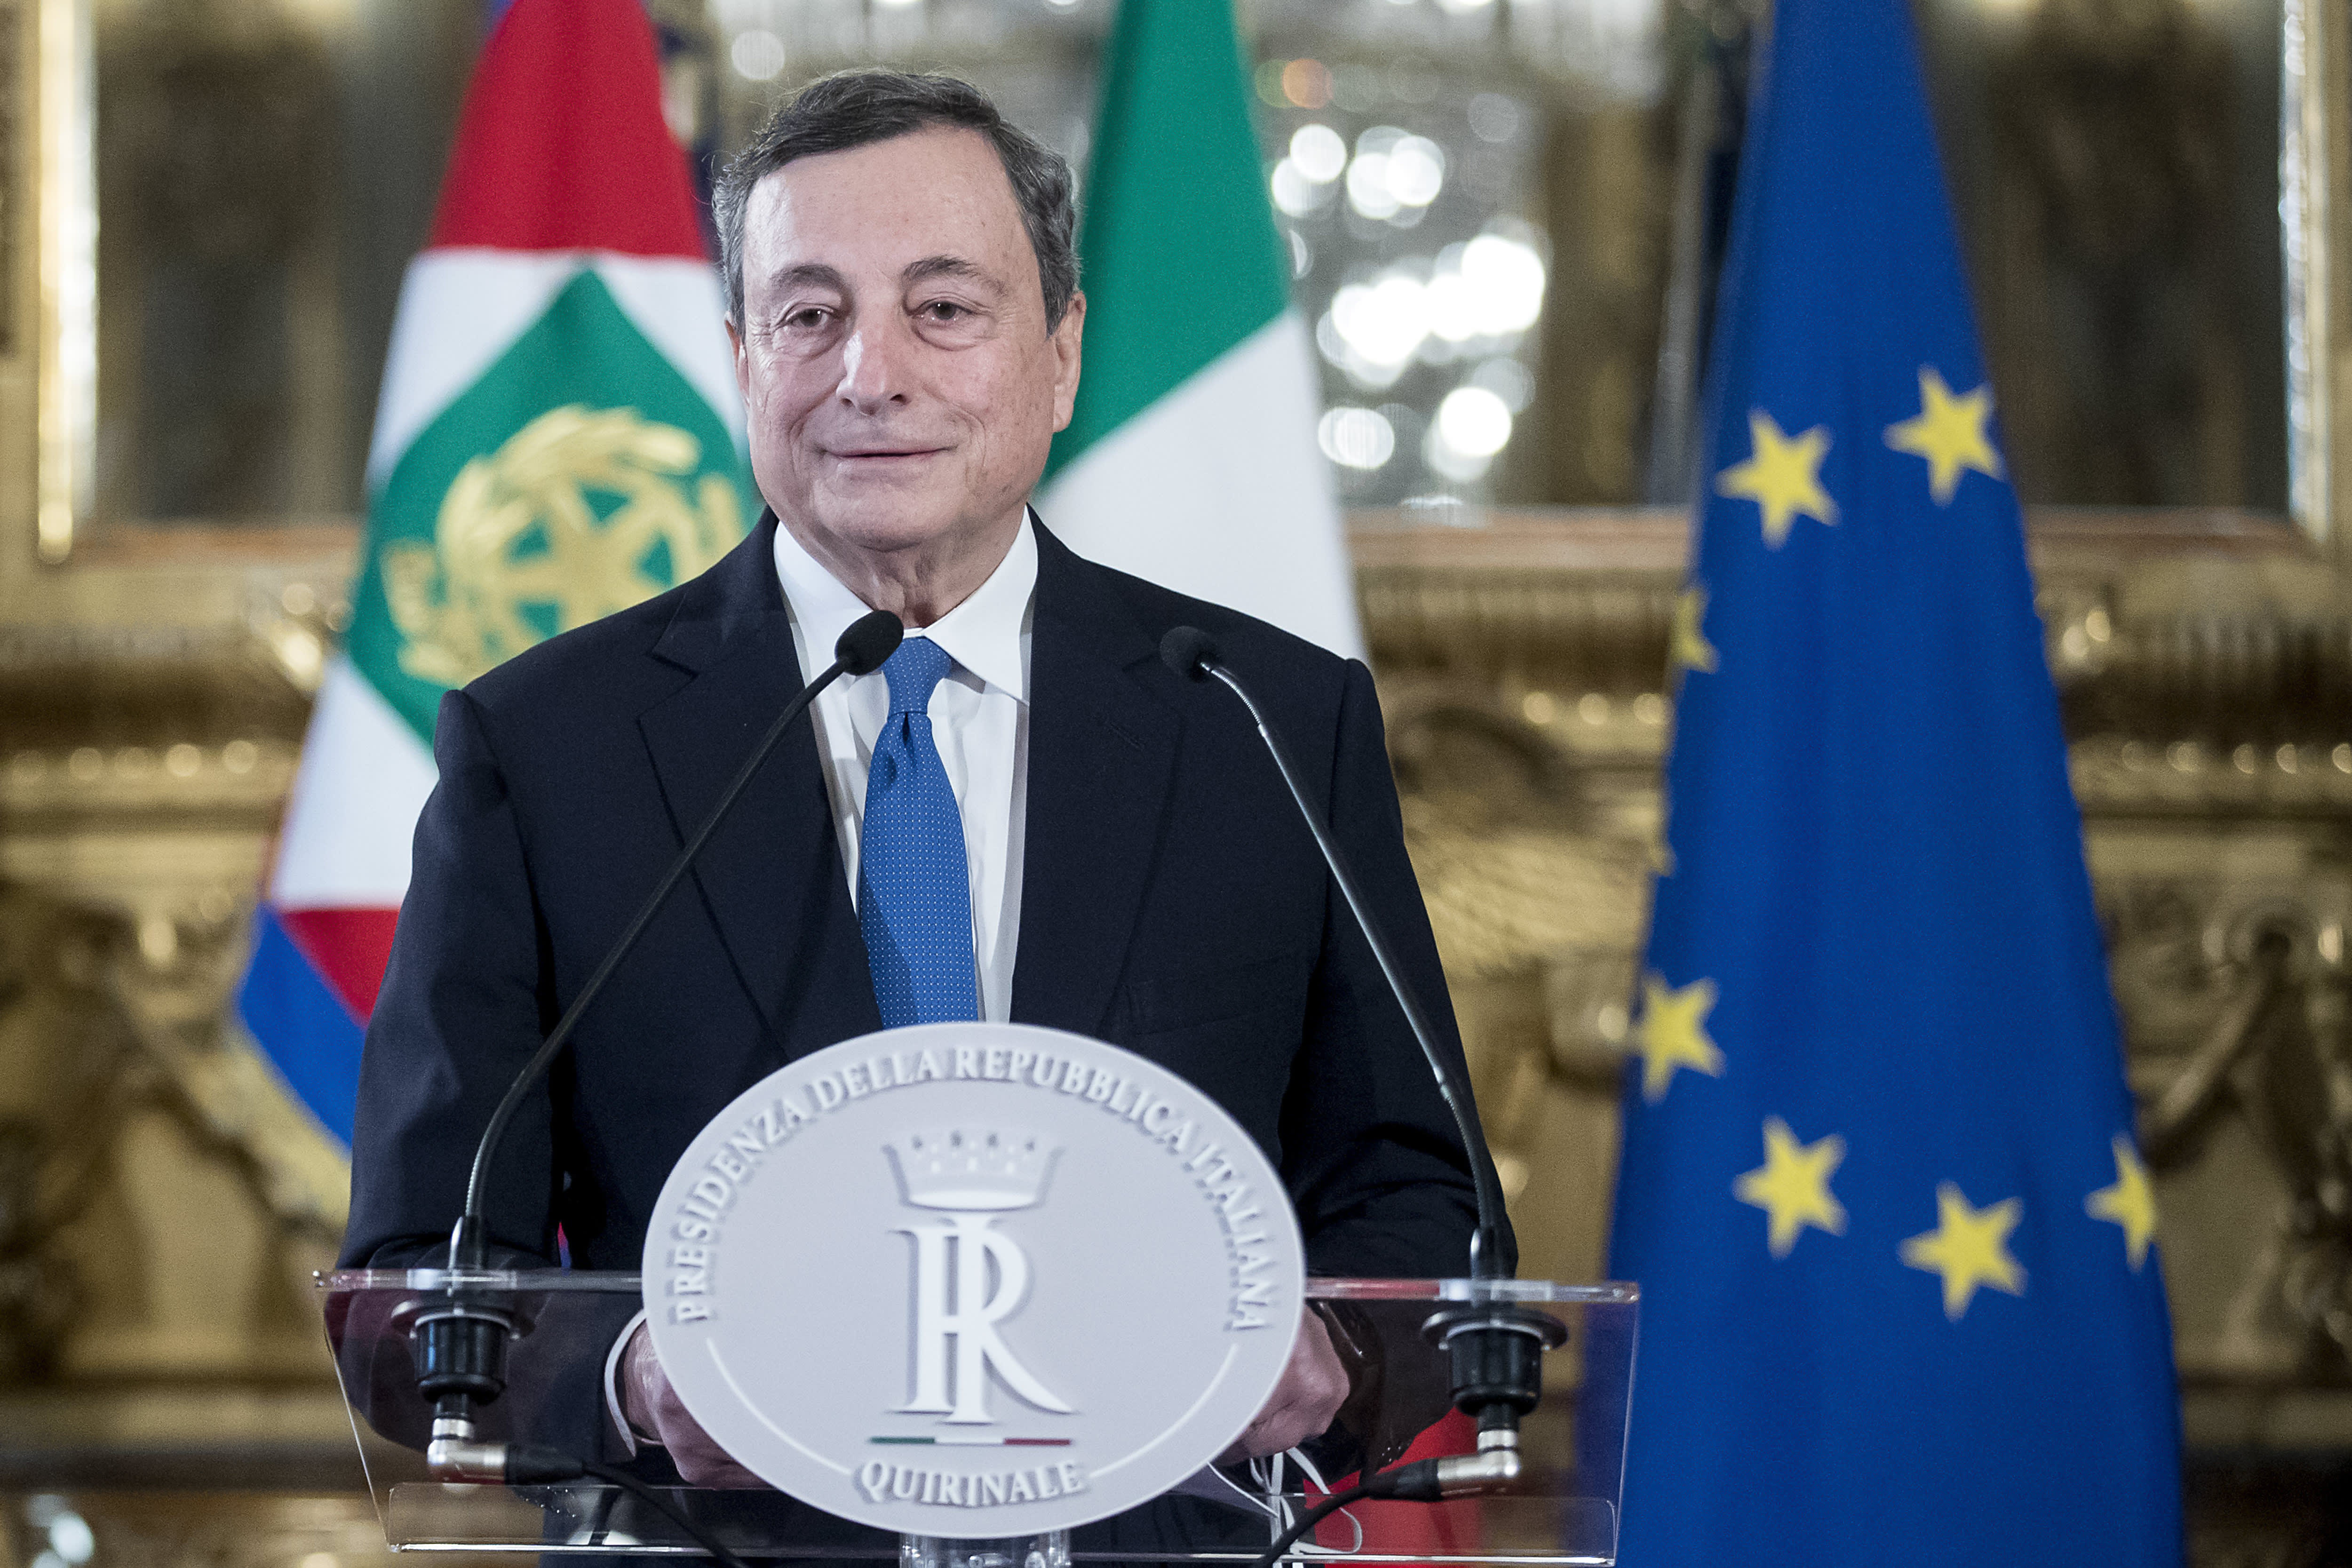 Mario Draghi wins the support of Five-Star Movement